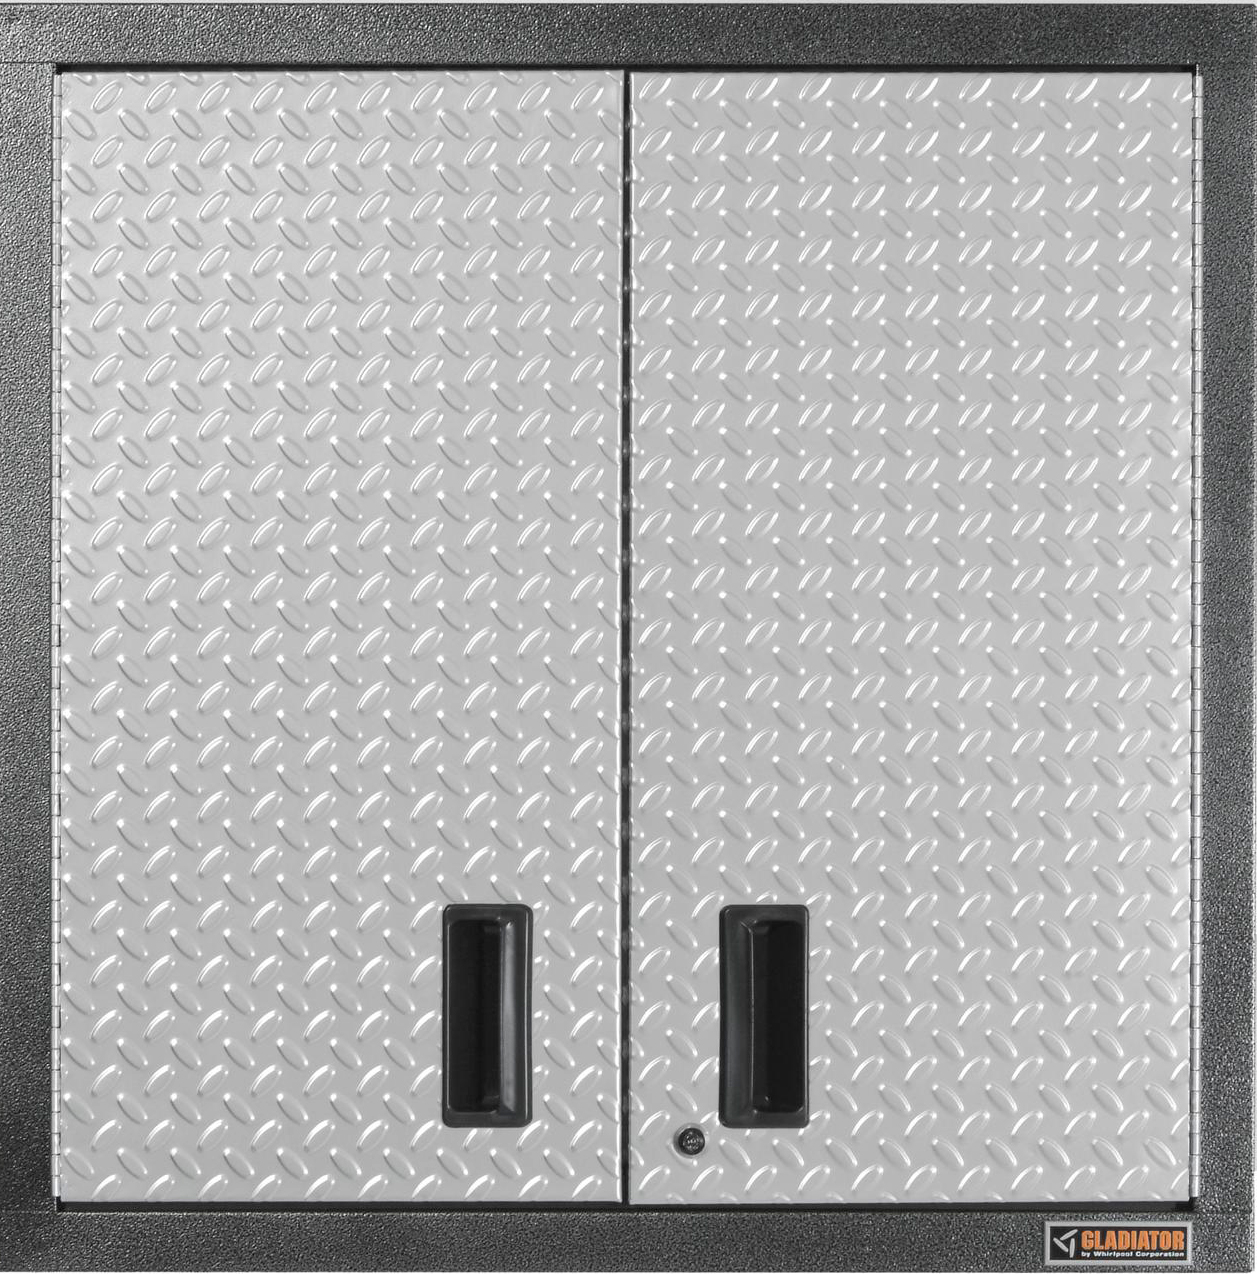 Metal Wall Cabinets Gladiator Premier Series Pre Assembled 30 In H X 30 In W X 12 In